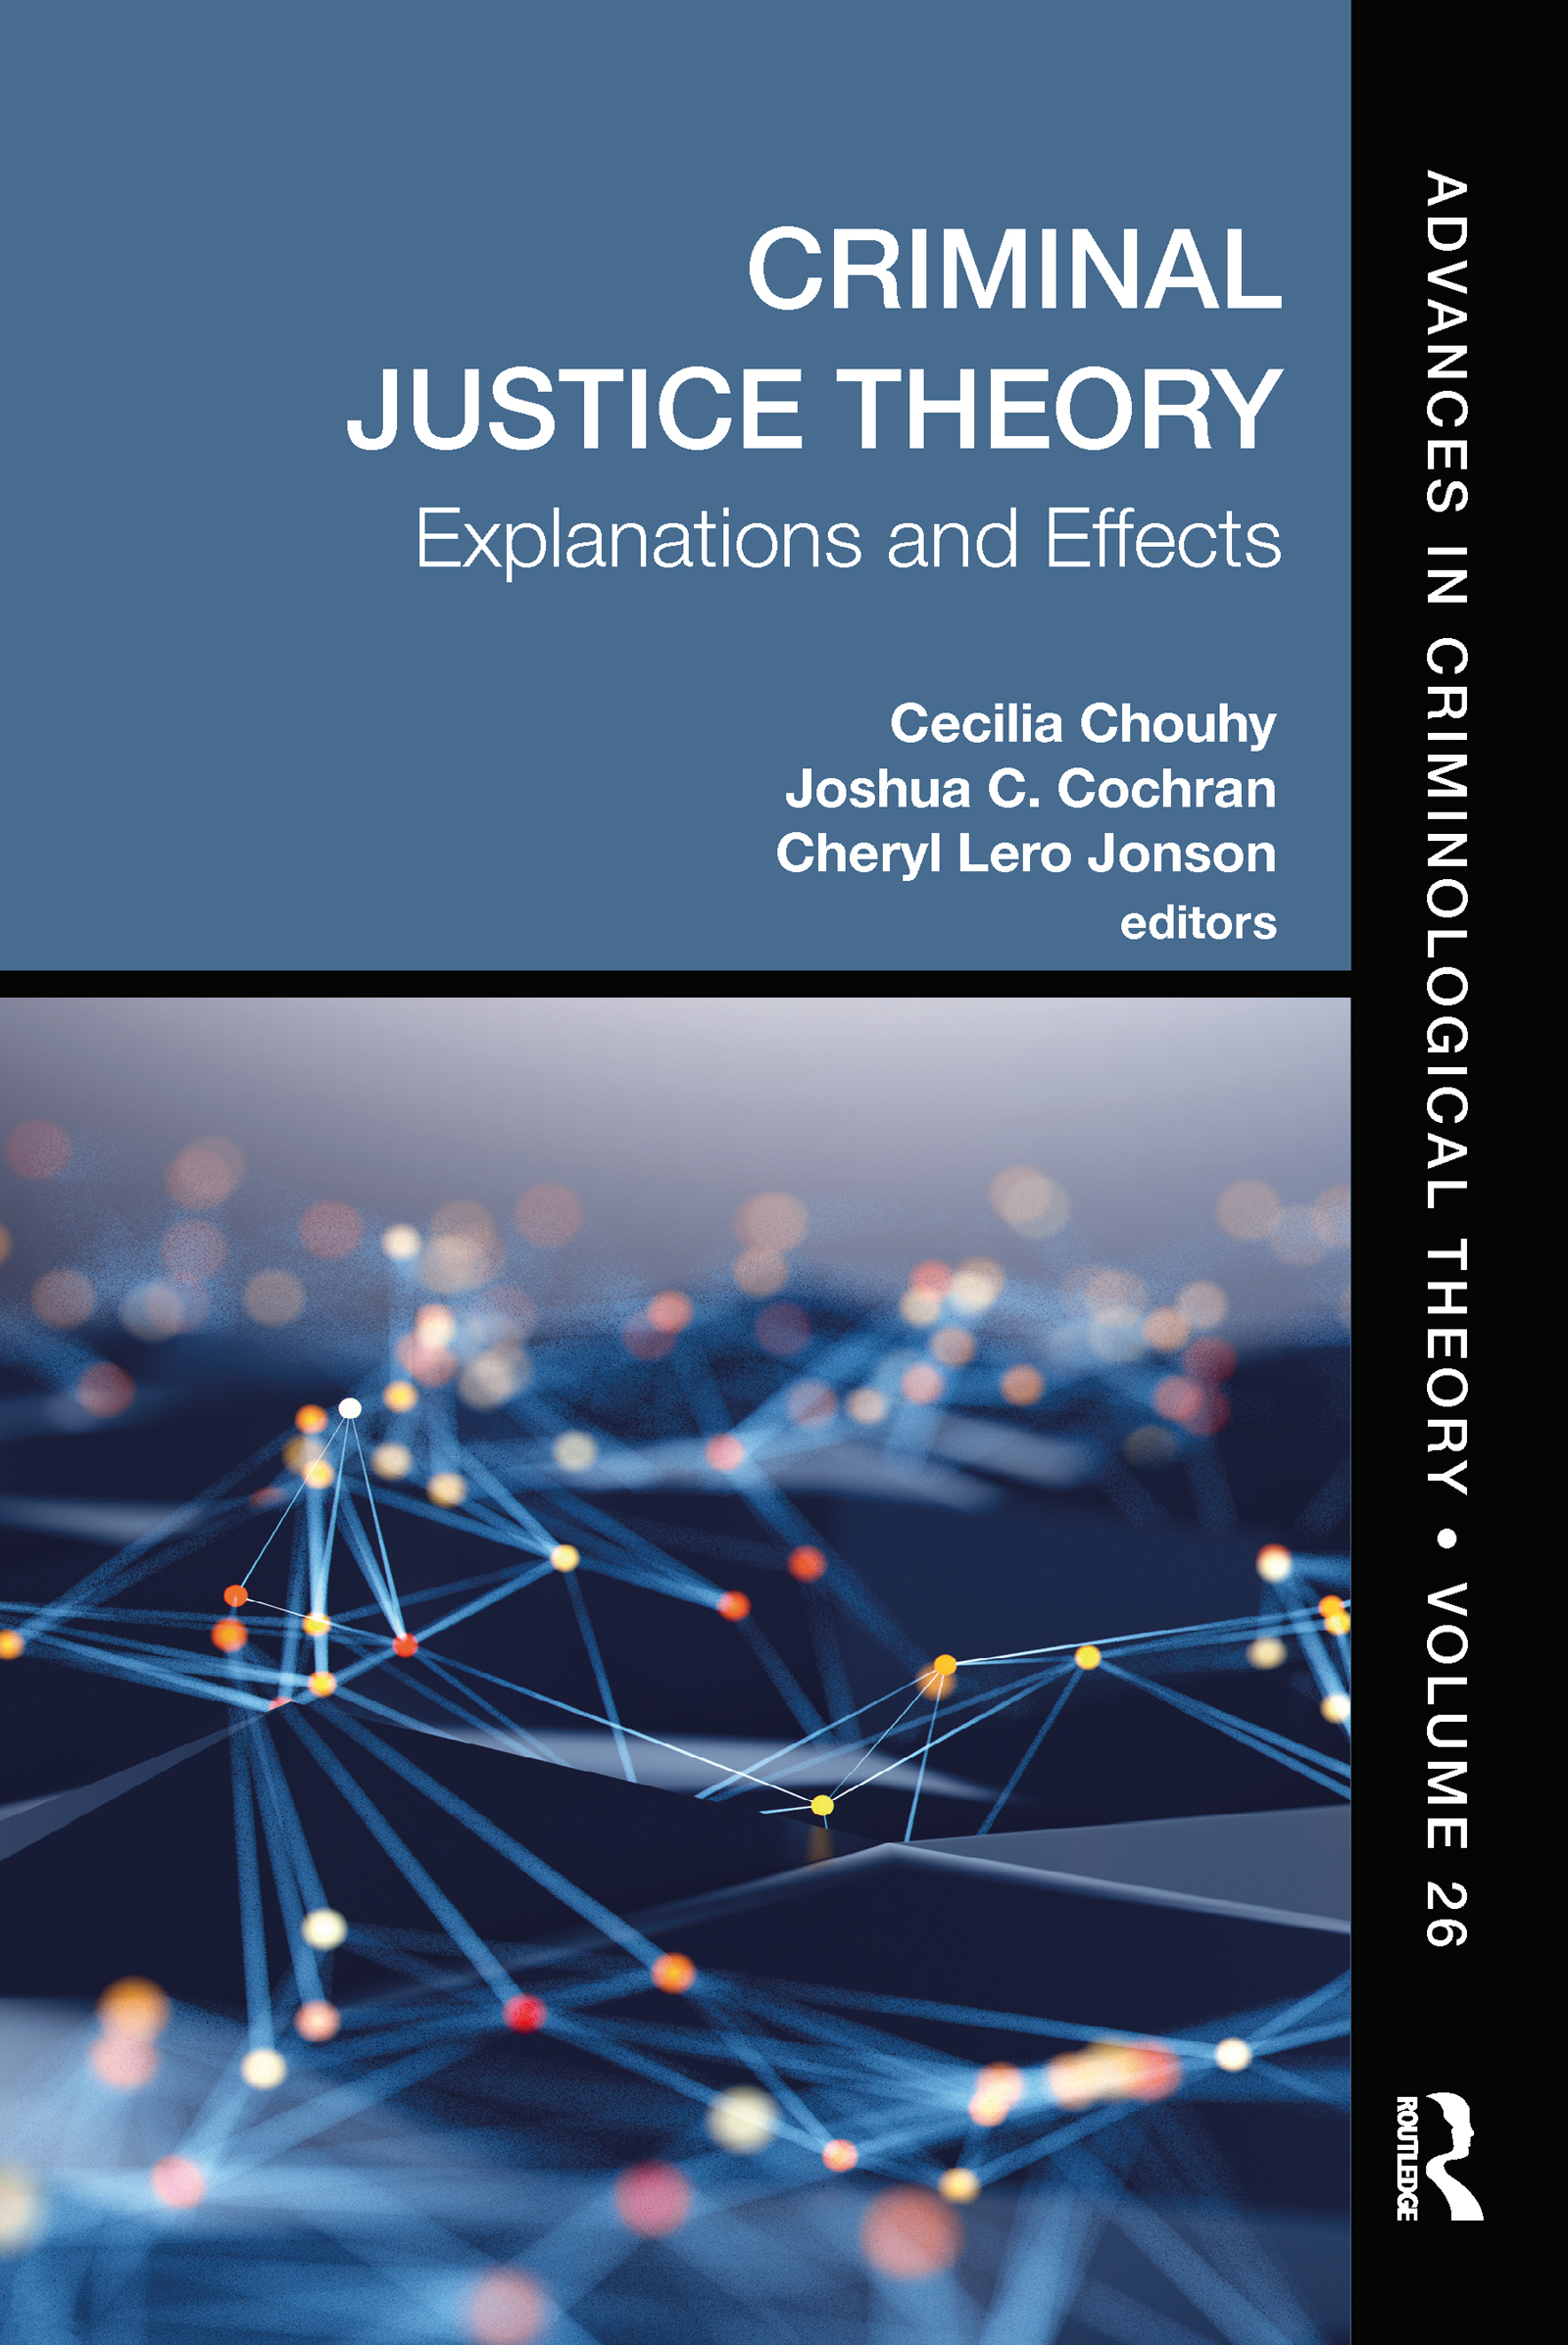 Criminal Justice Theory, Volume 26